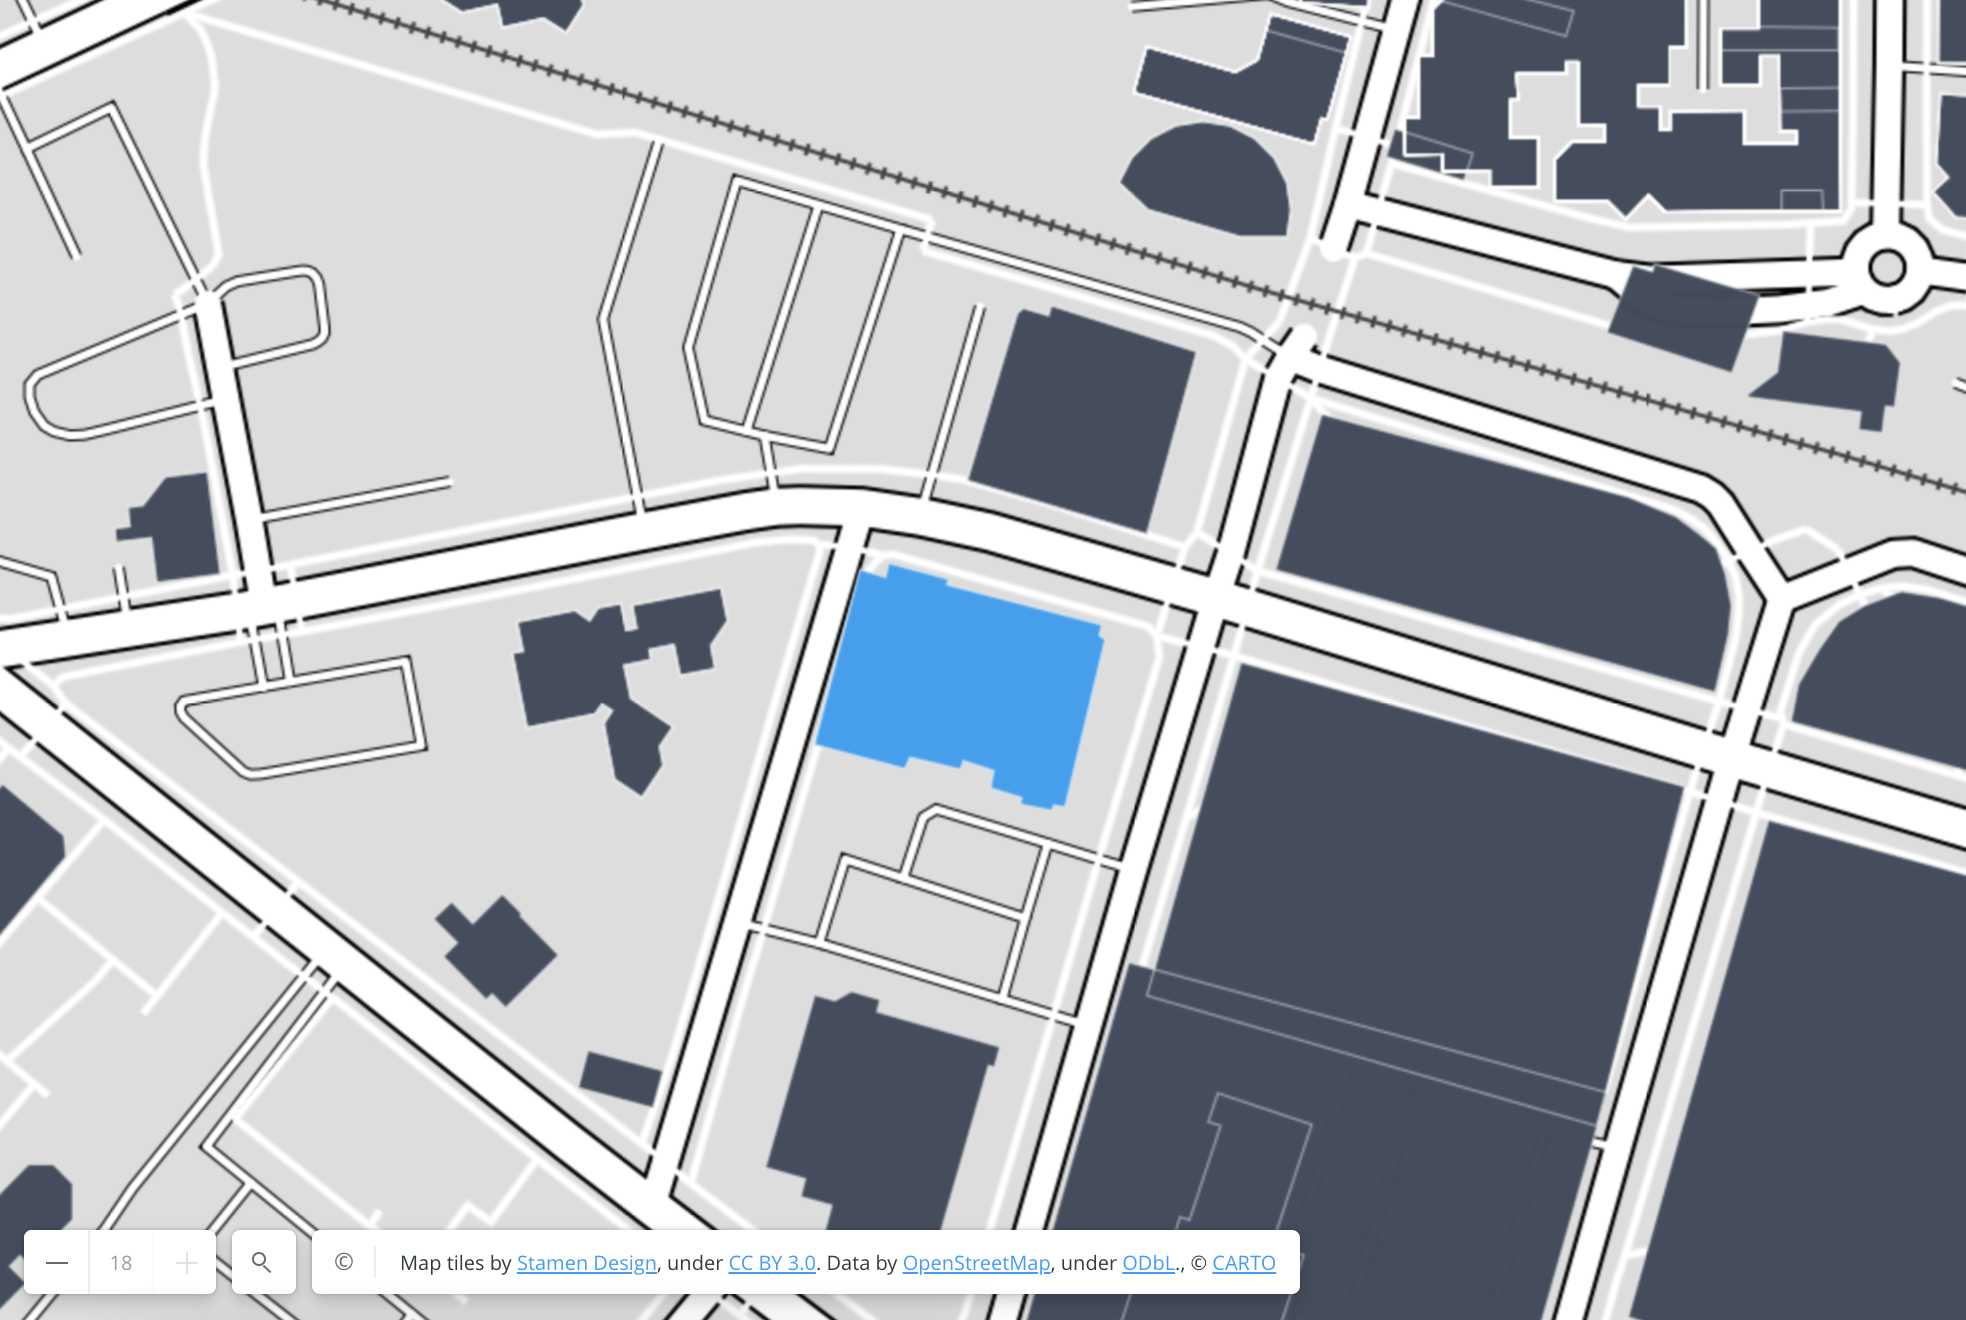 Insurance Risk Modeling with POI, Building Footprint, and Foot Traffic Data